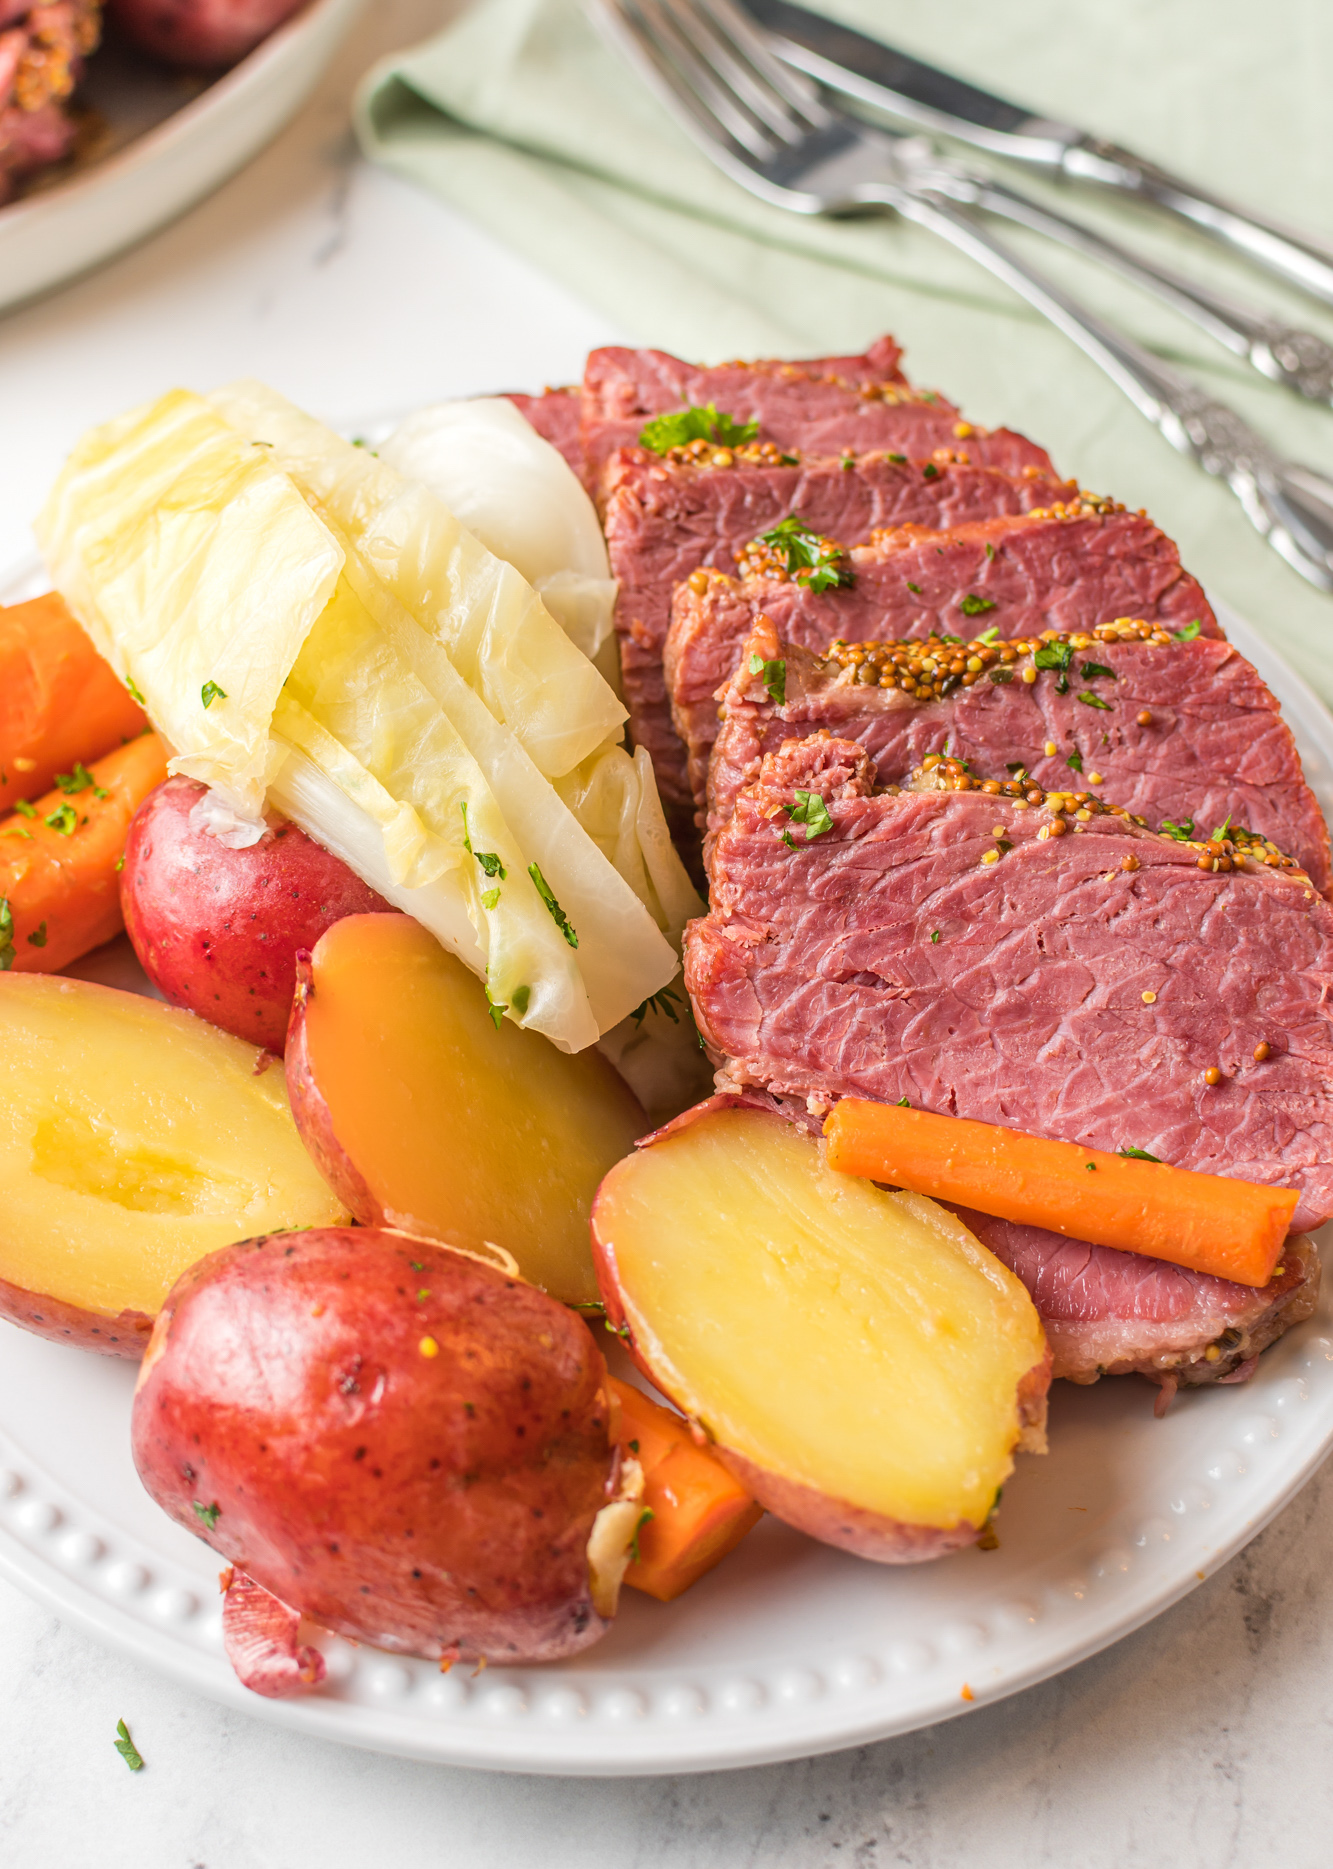 Instant Pot Corned Beef and Cabbage on white platter